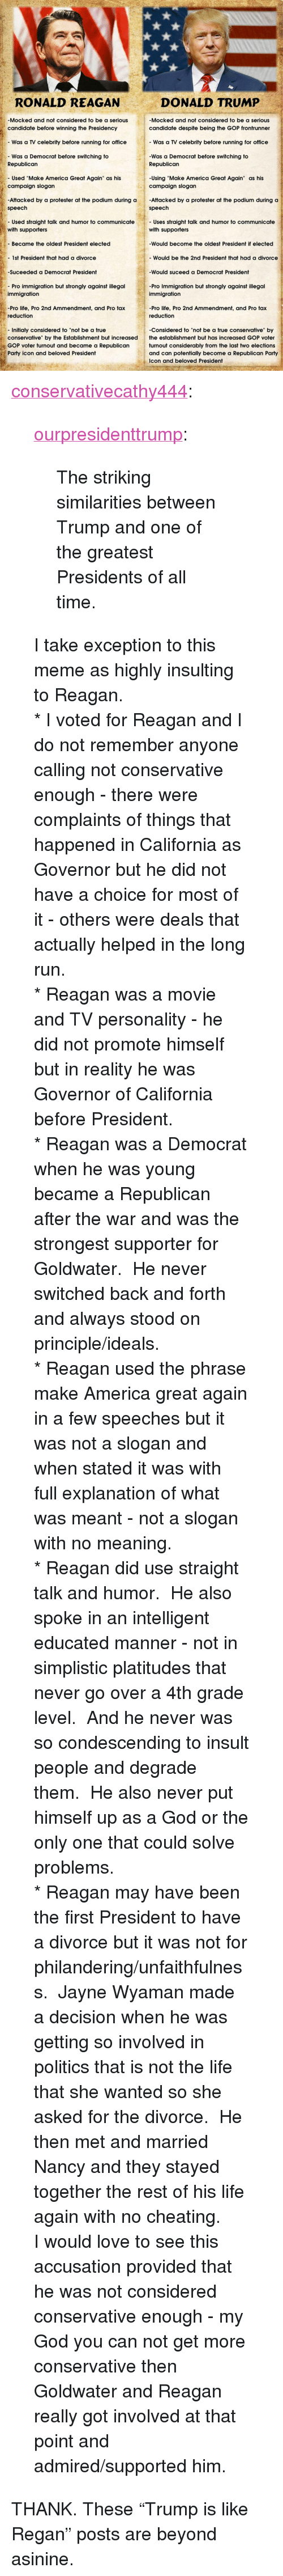 """Straight Talk: RONALD REAGAN  DONALD TRUMP  -Mocked and not considered to be a serious  candidate before winning the Presidency  -Mocked and not considered to be a serious  candidate despite being the GOP frontrunner  - Was a TV celebrity before running for office  -Was a Democrat before switching to  Was a TV celebrity before running for office  Was a Democrat before switching to  Republican  Republican  - Used """"Make America Great Again"""" as his  -Using """"Make America Great Again"""" as his  campaign slogan  campaign slogan  Attacked by a protester at the podium during a-Attacked by a protester at the podium during a  speech  speech  - Used straight talk and humor to communicate  - Uses straight talk and humor to communicate  with supporters  Became the oldest President elected  - 1st President that had a divorce  Suceeded a Democrat President  - Pro immigration but strongly against illegal  with supporters  -Would become the oldest President if elected  - Would be the 2nd President that had a divorce  Would suceed a Democrat President  -Pro Immigration but strongly against illegal  immigration  immigration  -Pro life, Pro 2nd Ammendment, and Pro tax  reduction  -Pro life, Pro 2nd Ammendment, and Pro tax  reduction  Initialy considered to """"not be a true  Considered to """"not be a true conservative"""" by  conservative"""" by the Establishment but increased the establishment but has increased GOP voter  GOP voter turnout and became a Republican  Party icon and beloved President  turnout considerably from the last two elections  and can potentially become a Republican Party  Icon and beloved President <p><a href=""""http://conservativecathy444.tumblr.com/post/151486391527/ourpresidenttrump-the-striking-similarities"""" class=""""tumblr_blog"""">conservativecathy444</a>:</p>  <blockquote><p><a class=""""tumblr_blog"""" href=""""http://ourpresidenttrump.tumblr.com/post/141448628774"""">ourpresidenttrump</a>:</p> <blockquote> <p>The striking similarities between Trump and one of the greatest Presidents of """